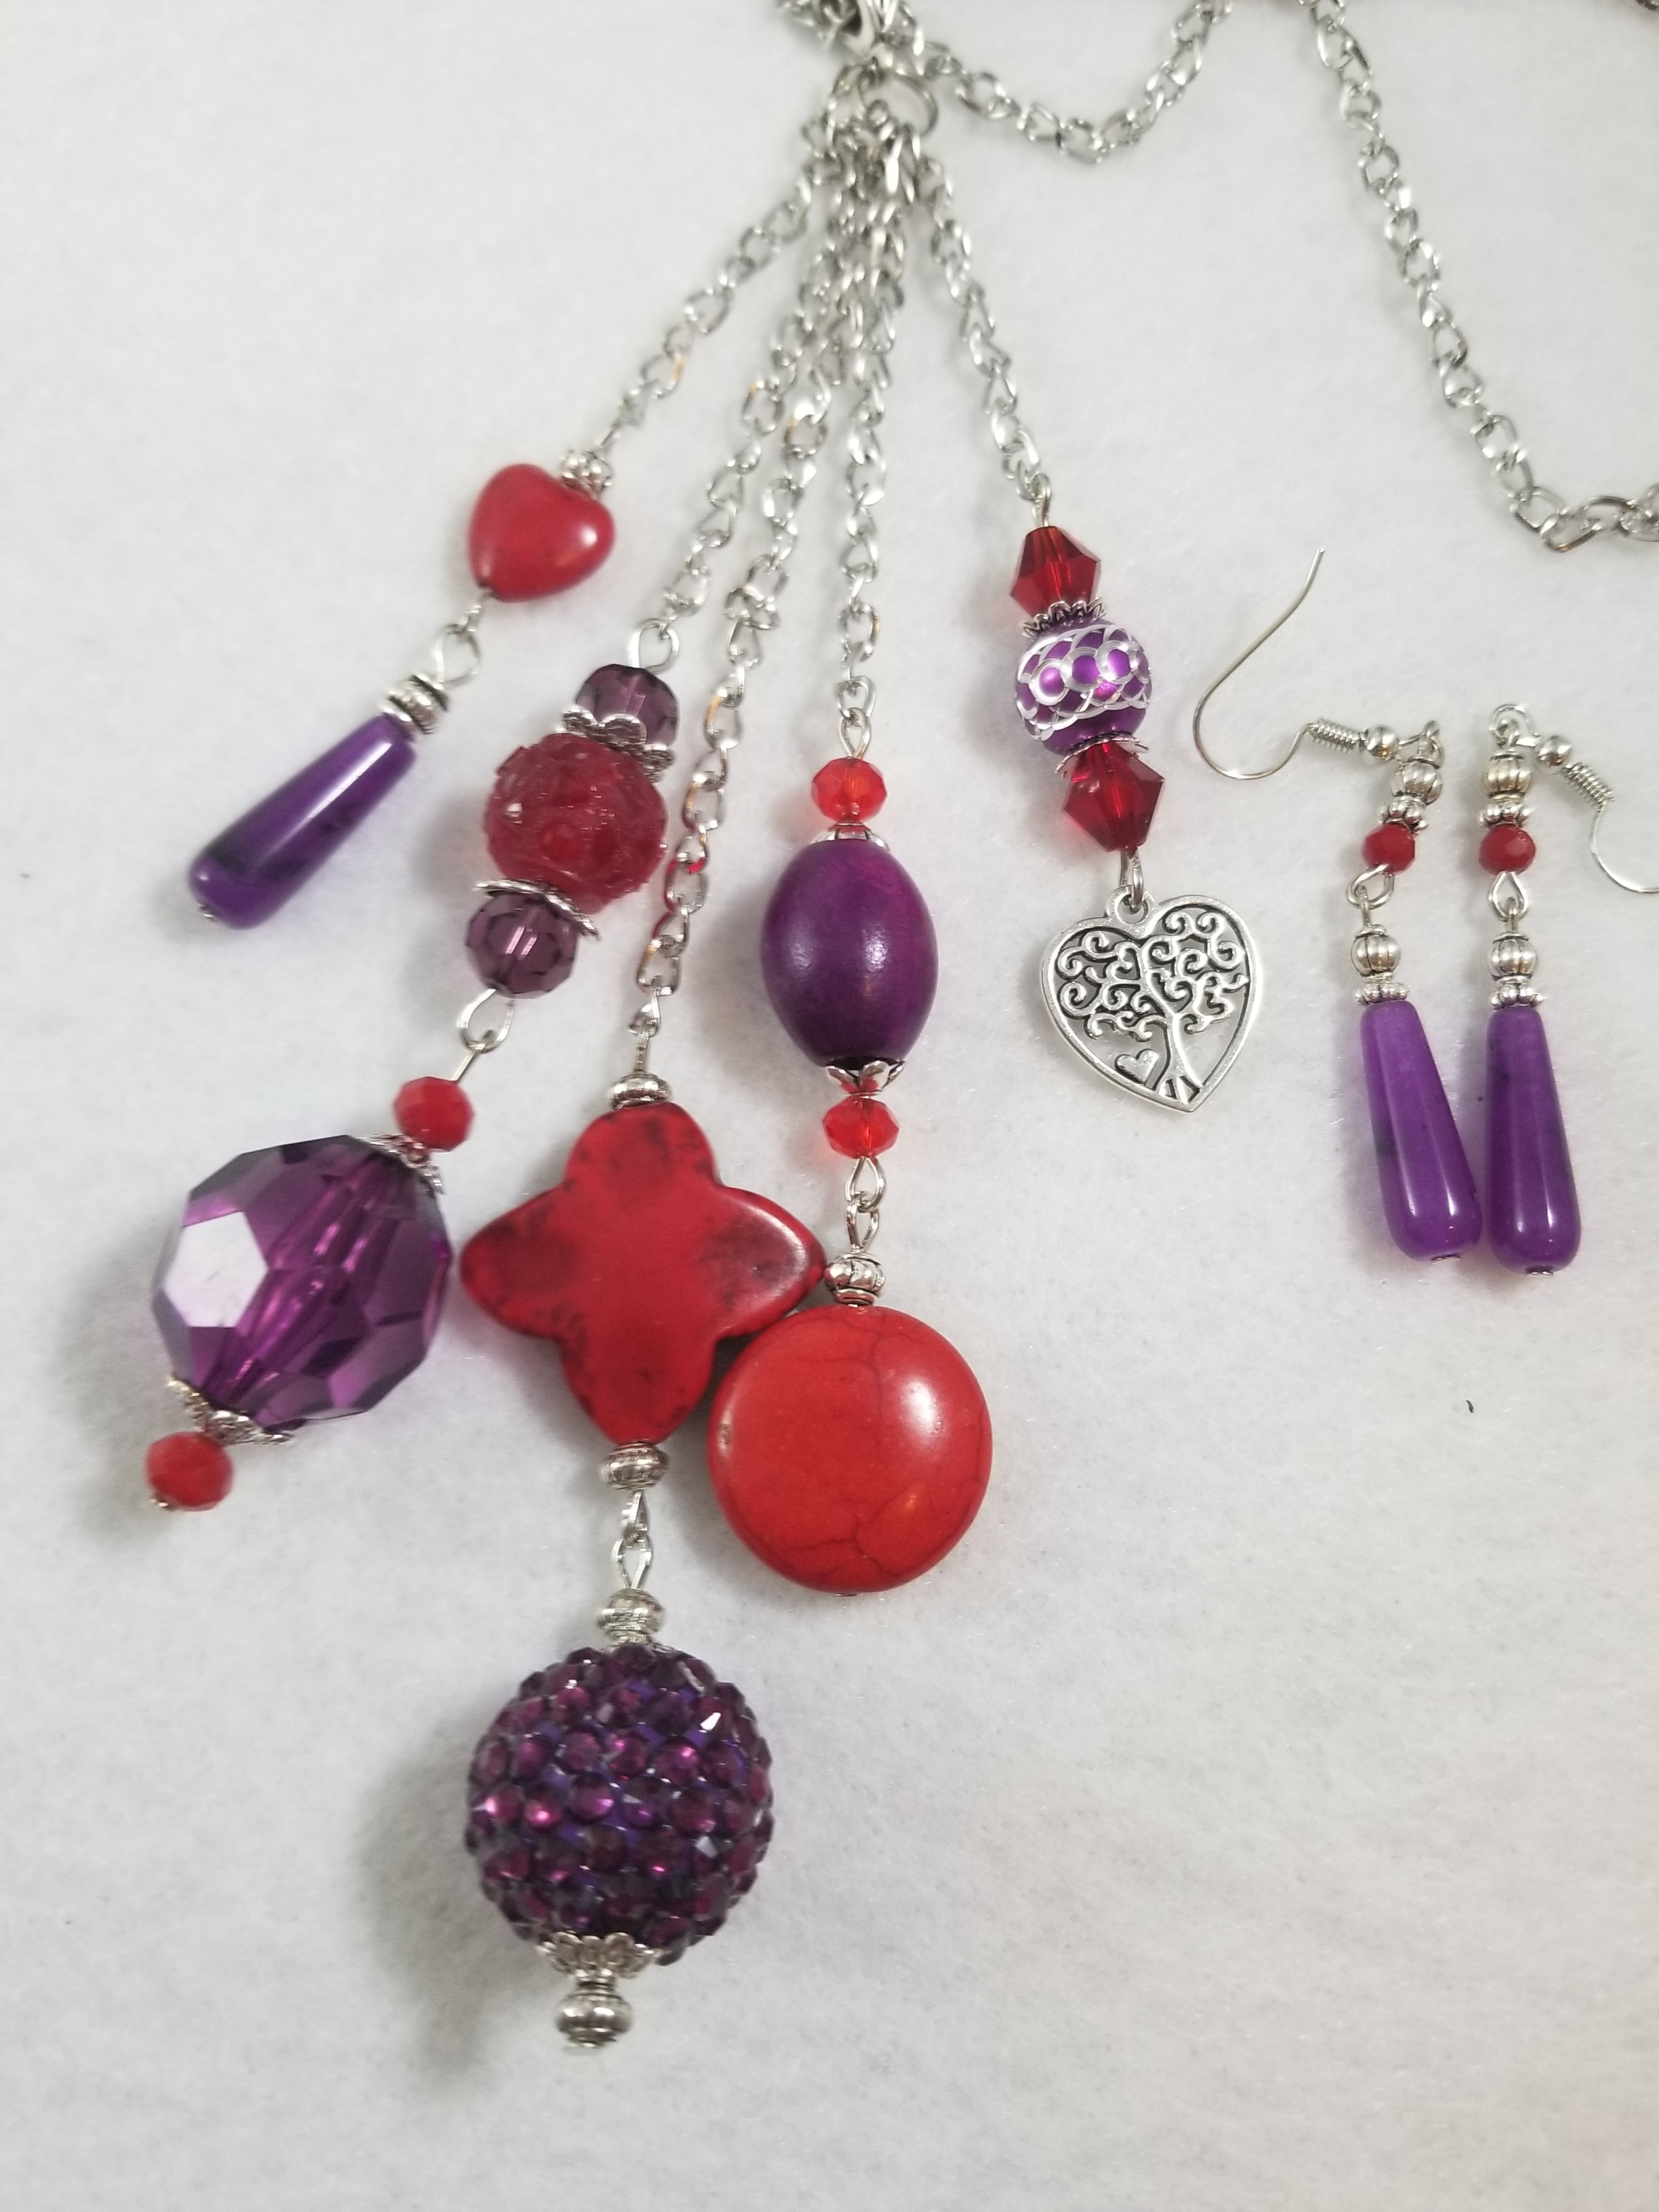 Red Hat 8 Necklace with Earrings